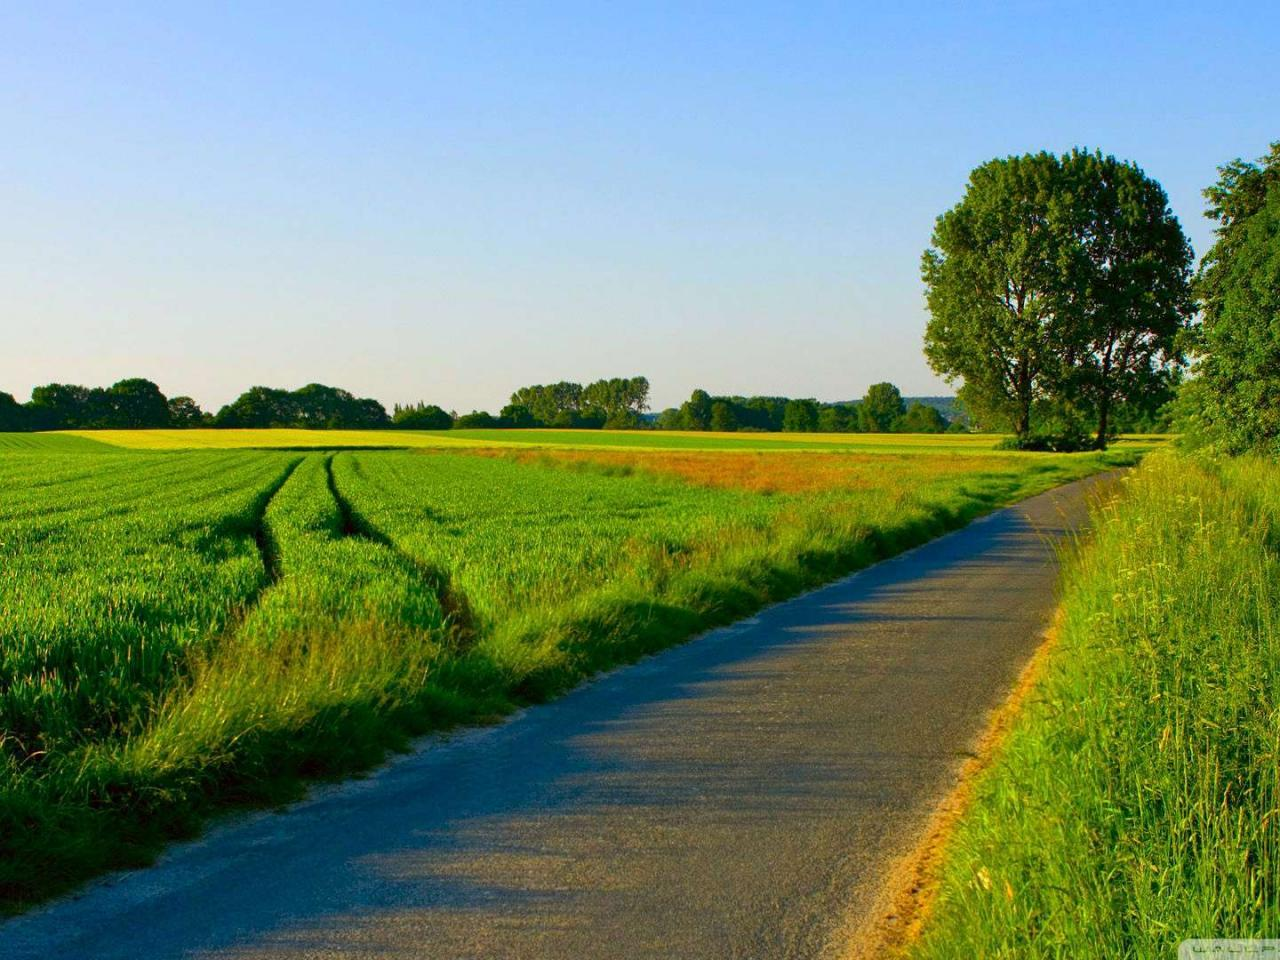 Natural Image In HD With Picture Of Road In Village